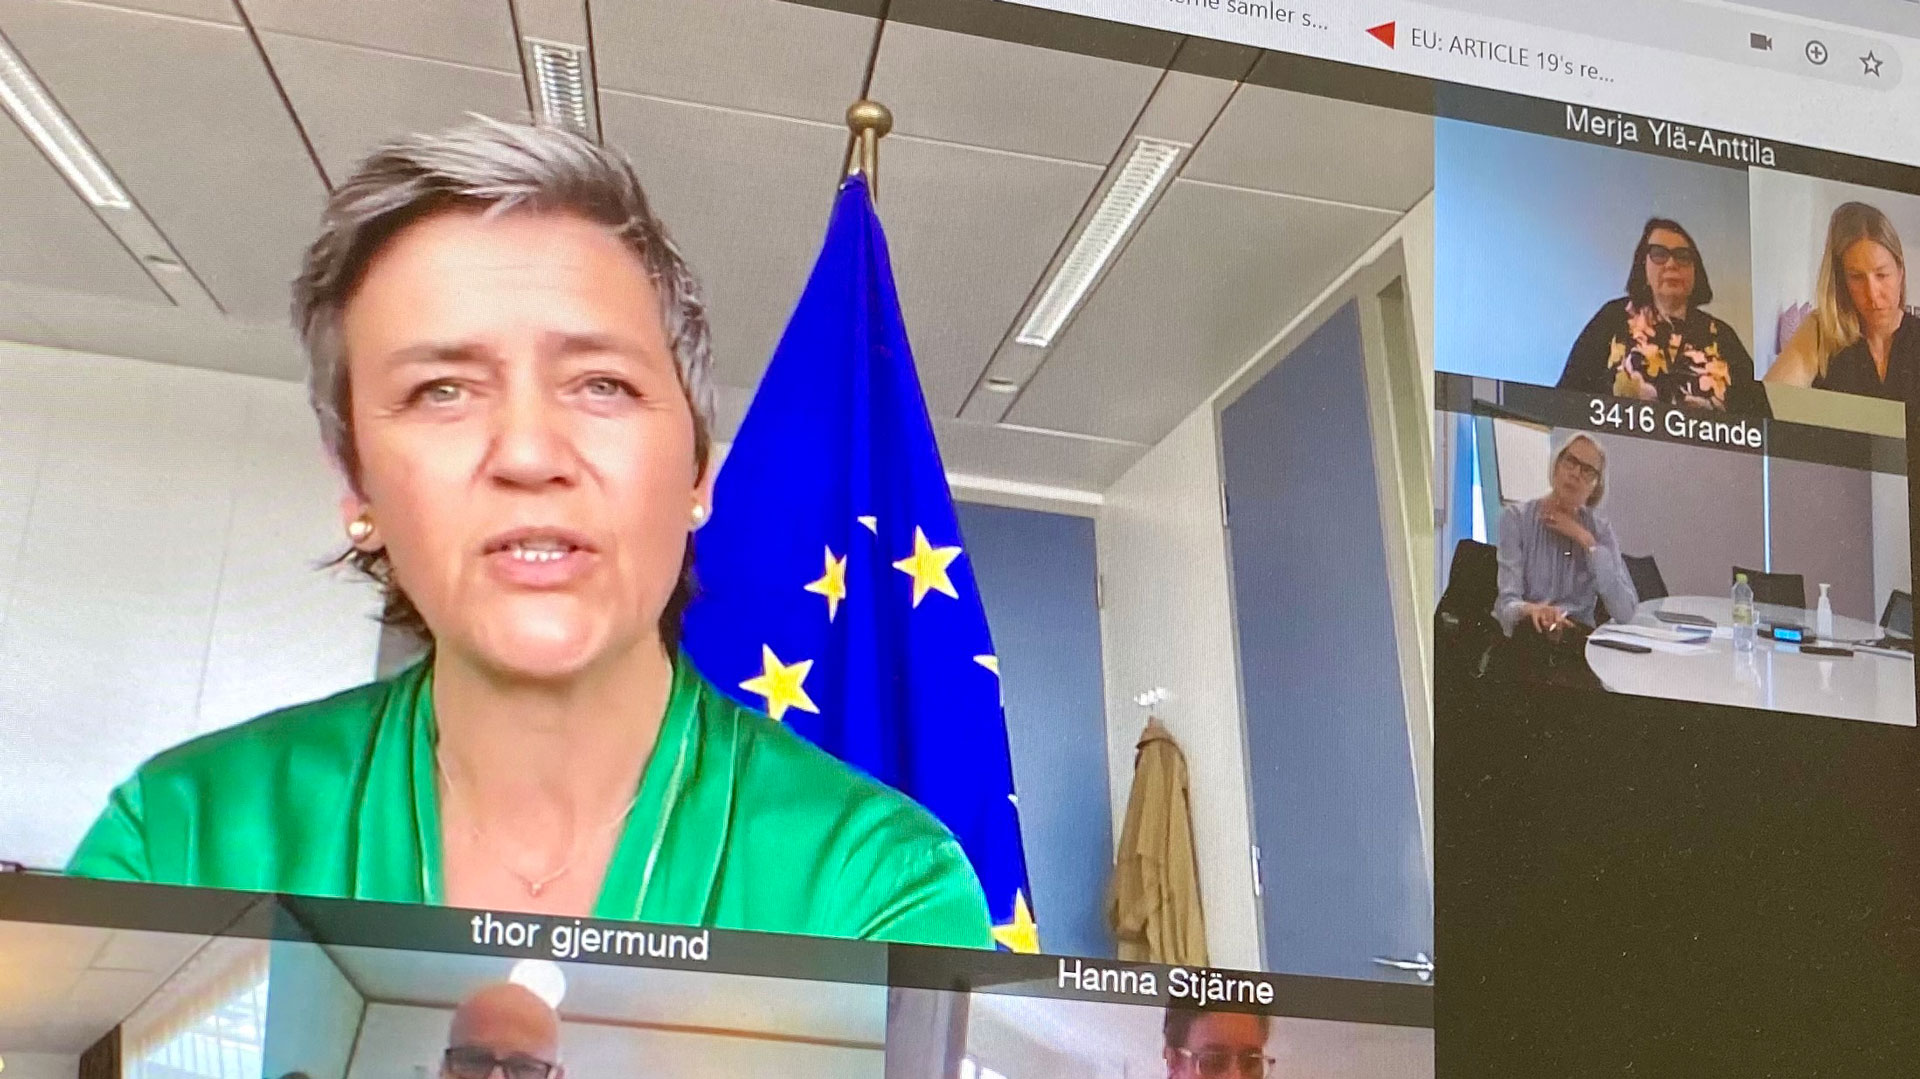 Margrethe Vestager in an online meeting